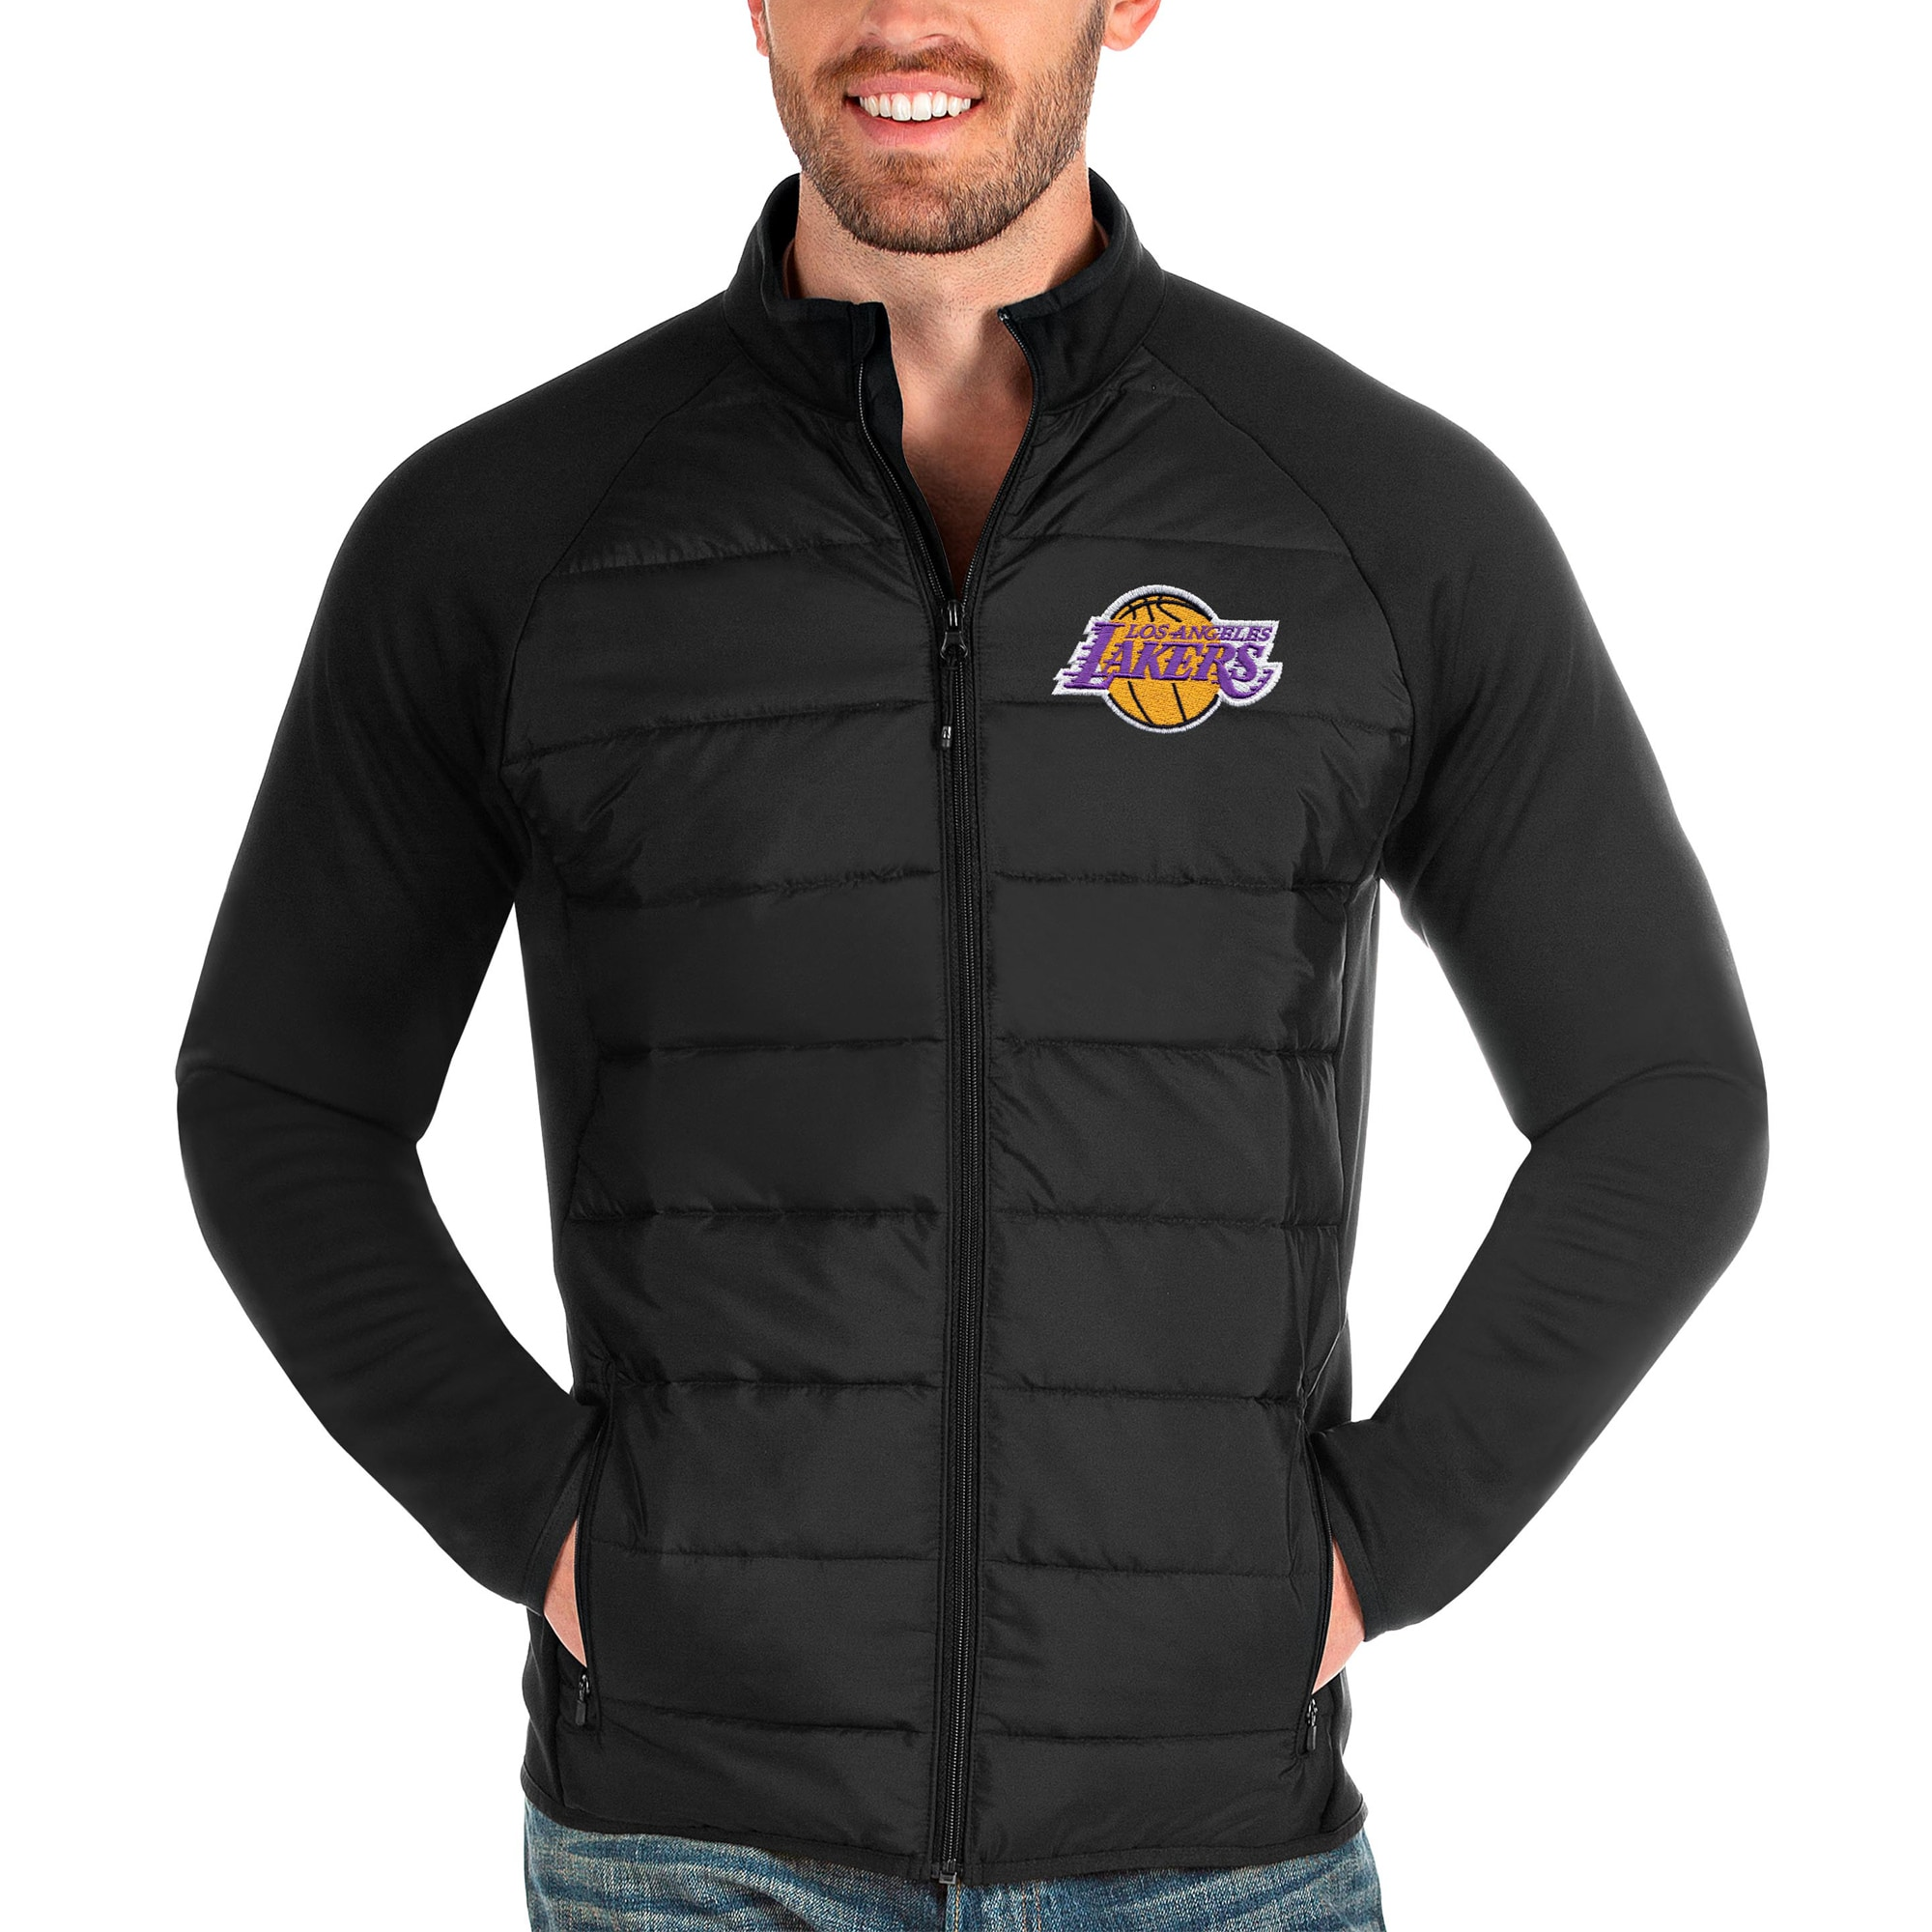 Los Angeles Lakers Antigua Altitude Full-Zip Jacket - Black